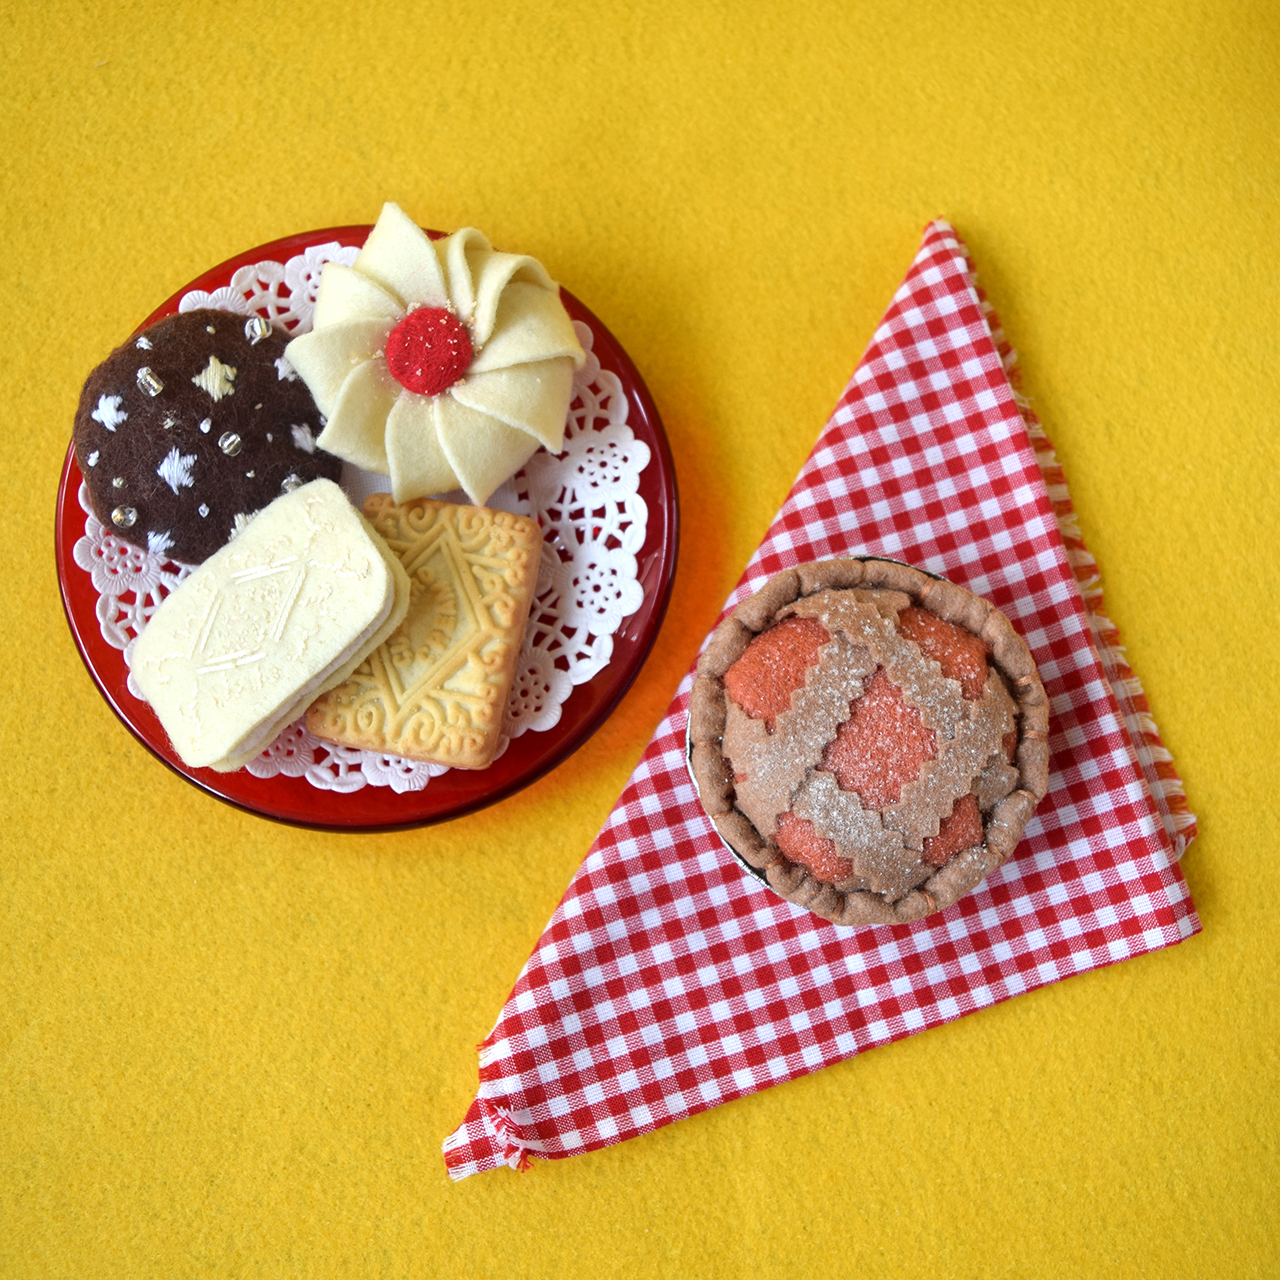 Italian and British felt biscuits by Ilaria from Zest & Lavender